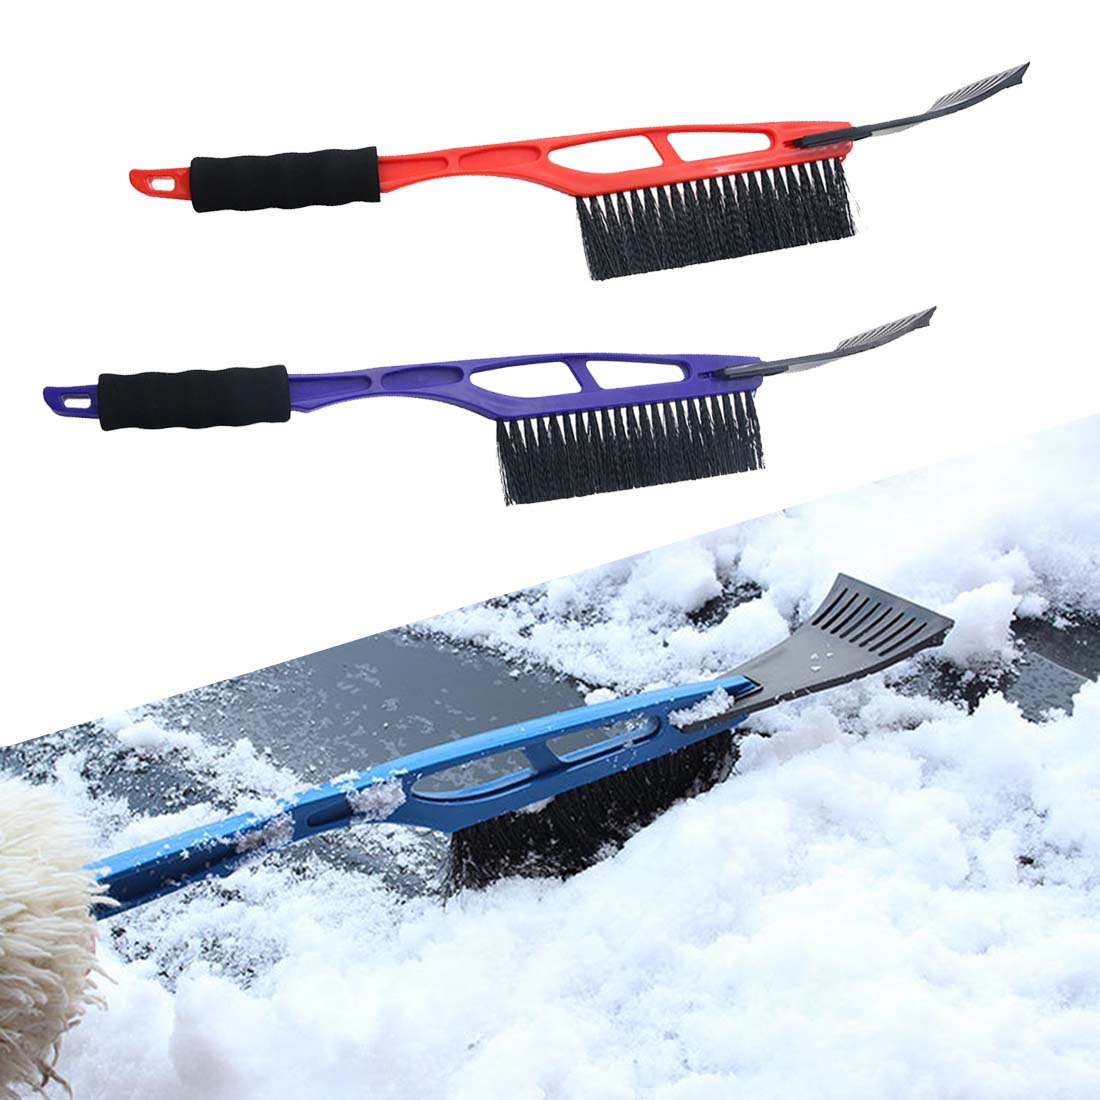 Dongzhen 1X 2 in 1 Auto Snow Brush Scraper Shovel Ice Scrapers Vehicle Brushes Car Cleaning Tools Winter Snowbrush Car-styling